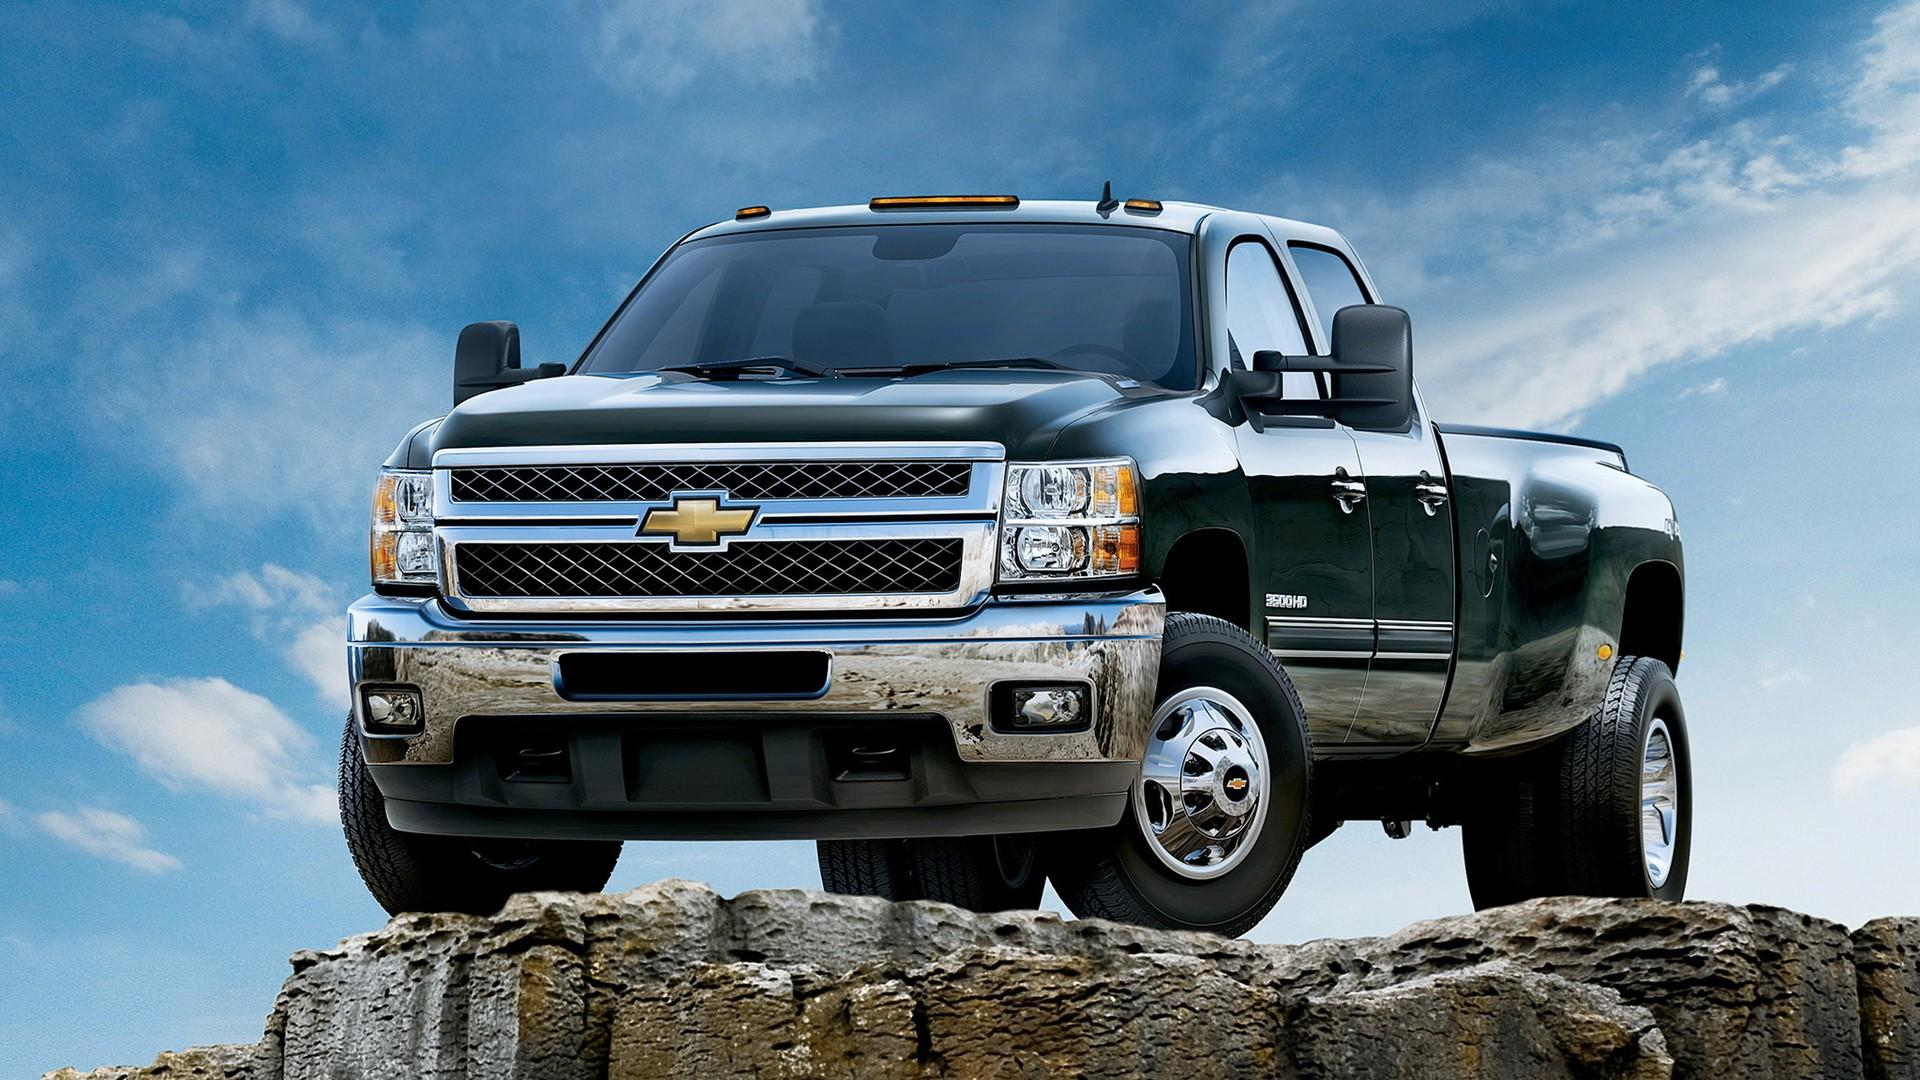 2014 Chevy Silverado Truck HD Wallpaper   HD 1920x1080